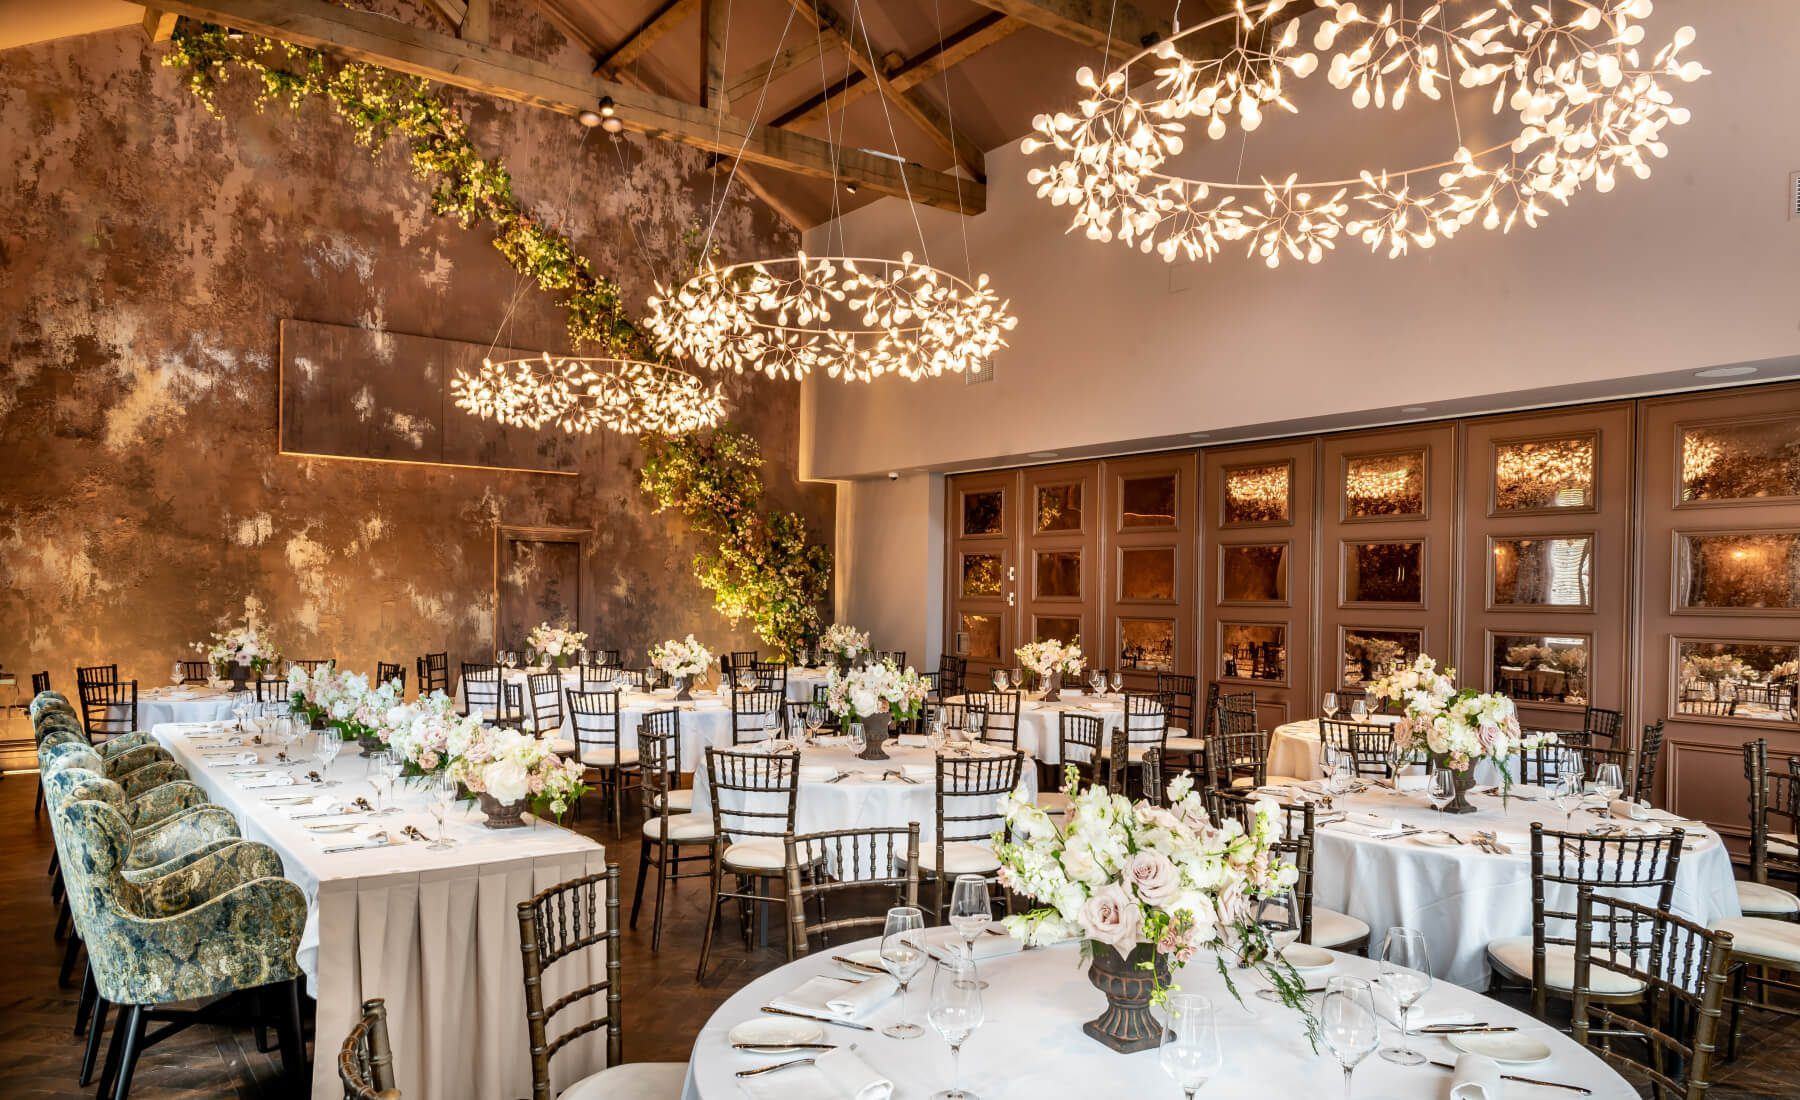 Lighting in the wedding venue at Manor House, Lindley